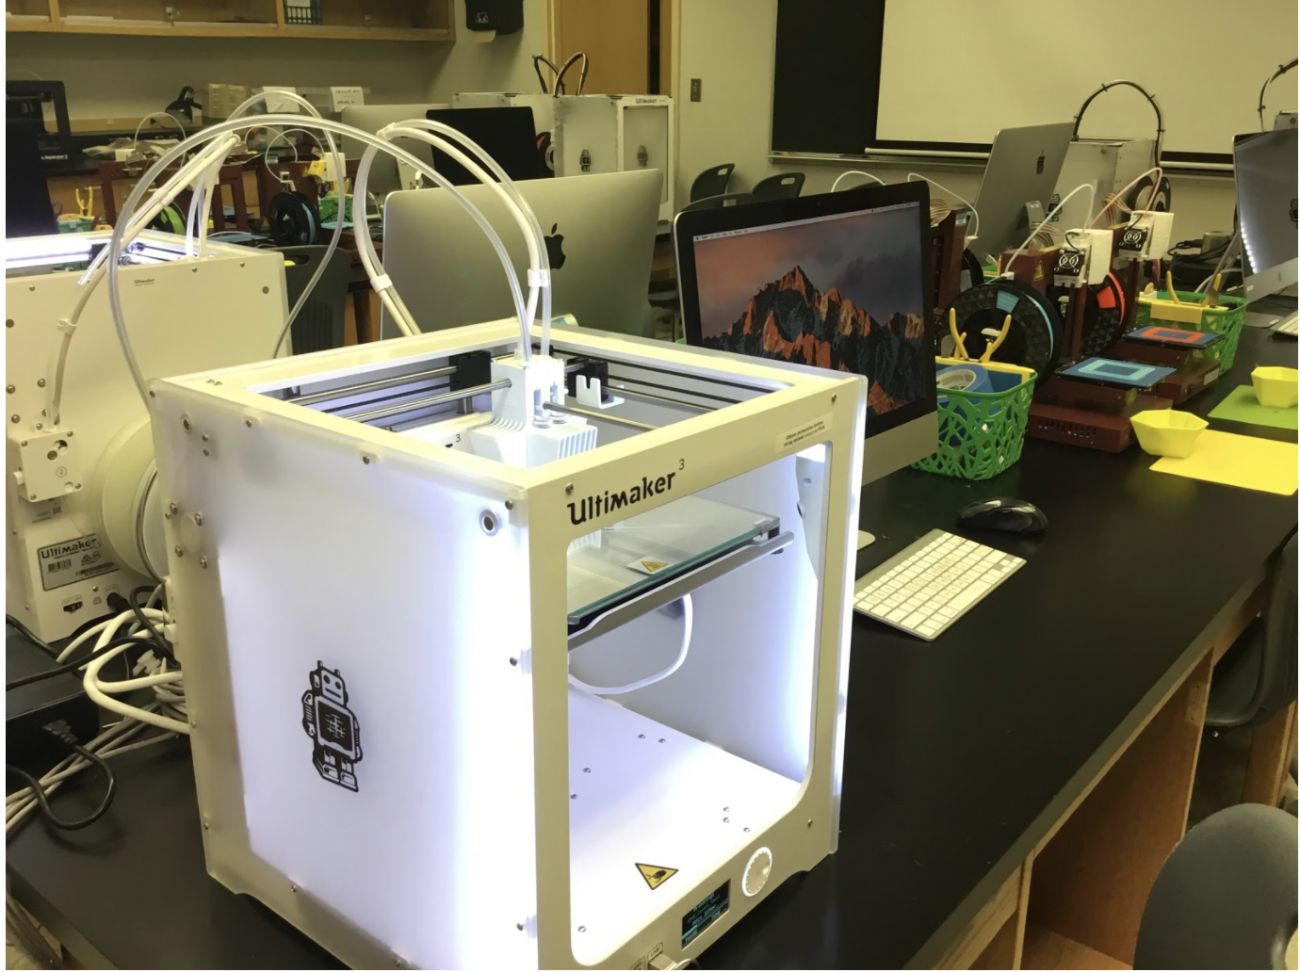 JMU's Ultimakers